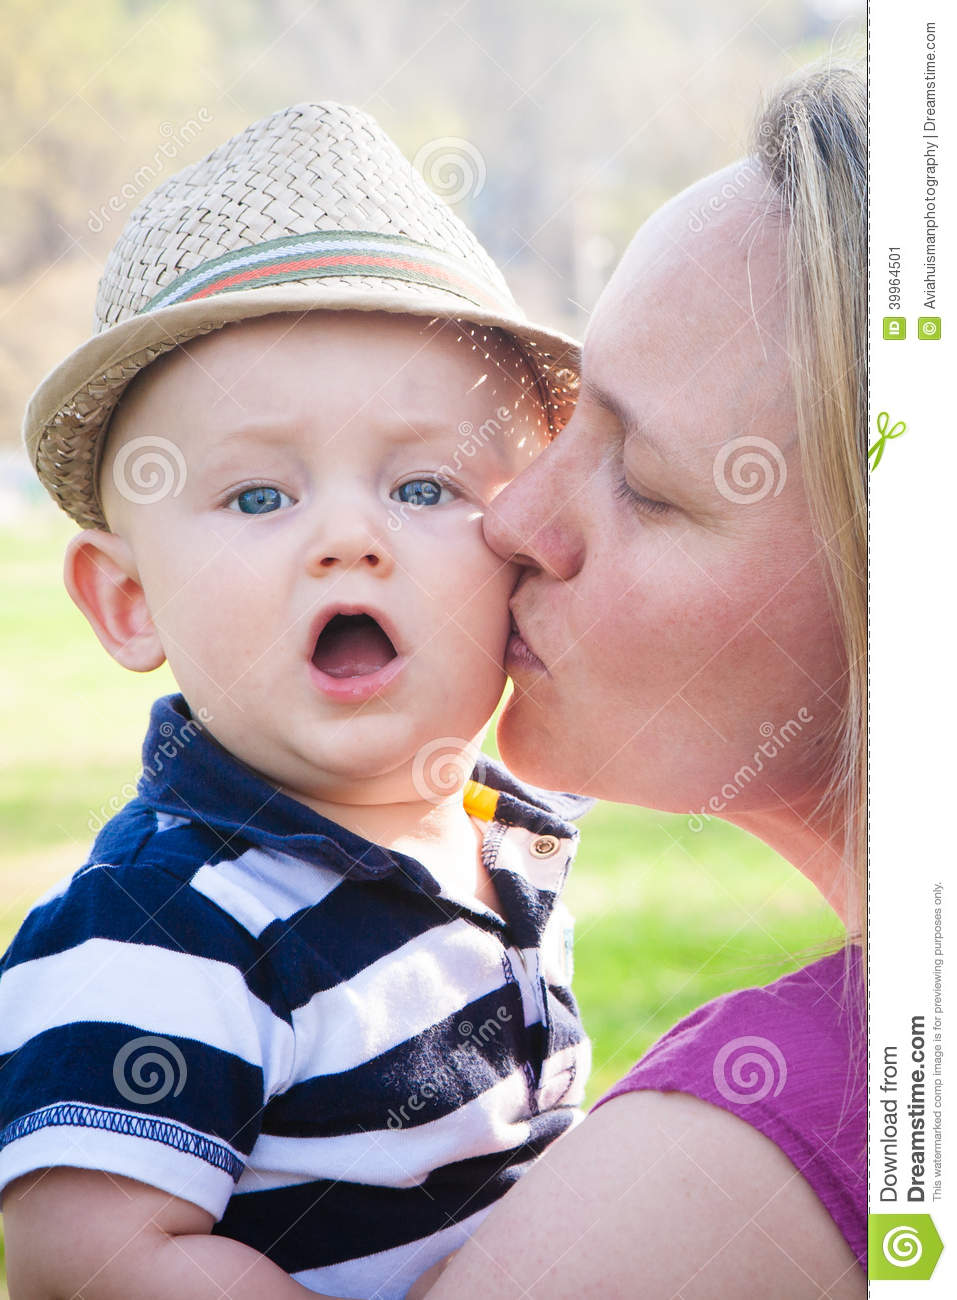 happy mother kissing cute baby boy stock image - image of kissing